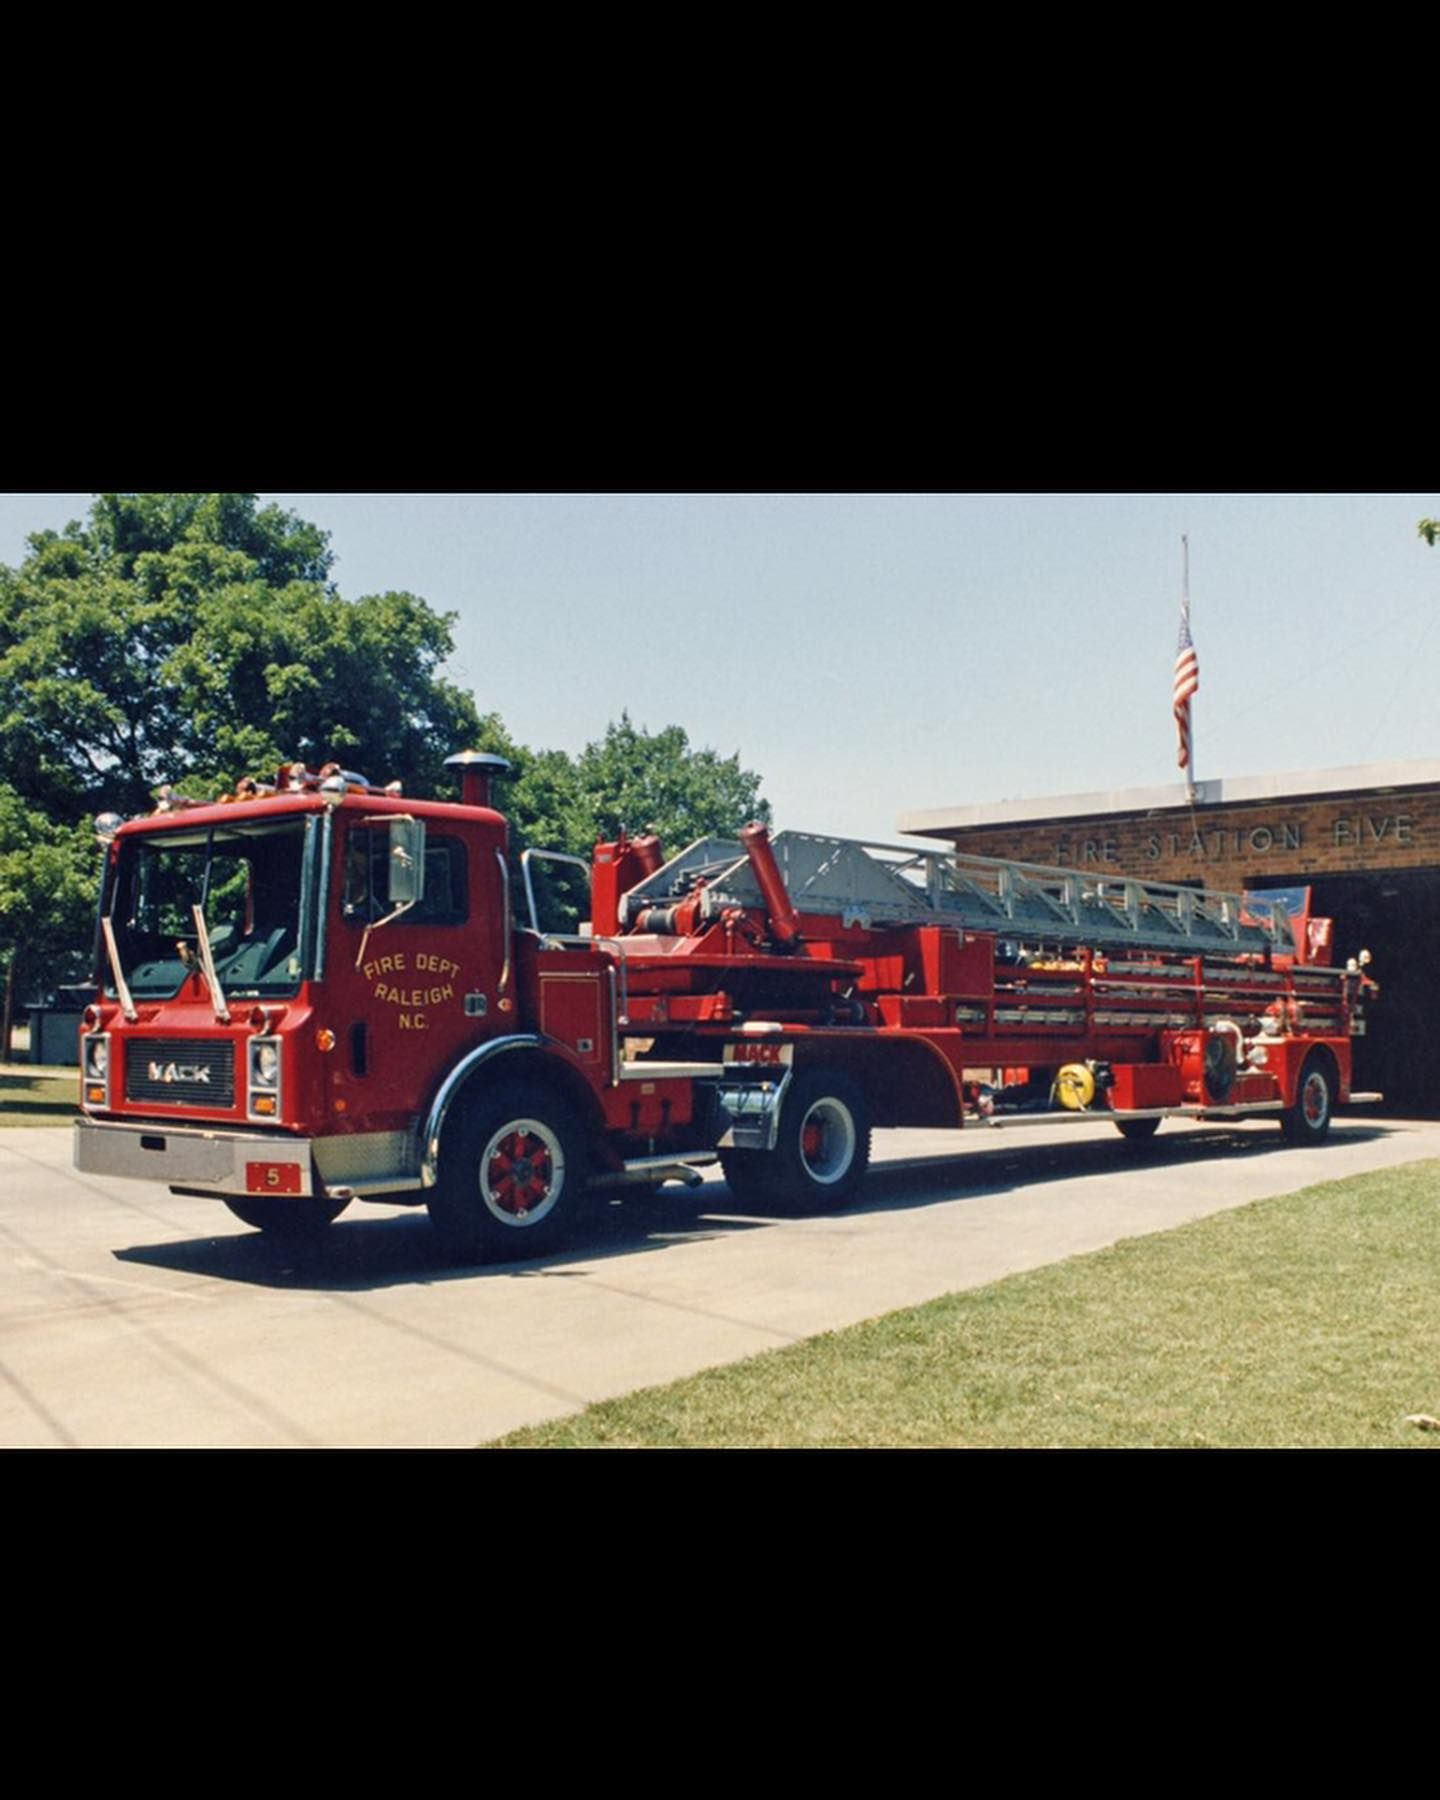 Raleigh Fire Department S Nc Old 1979 Flat Nose Mack Tractor Pulling A 1958 American Lafrance Aerial Trailer Fire Trucks Mack Trucks Emergency Vehicles